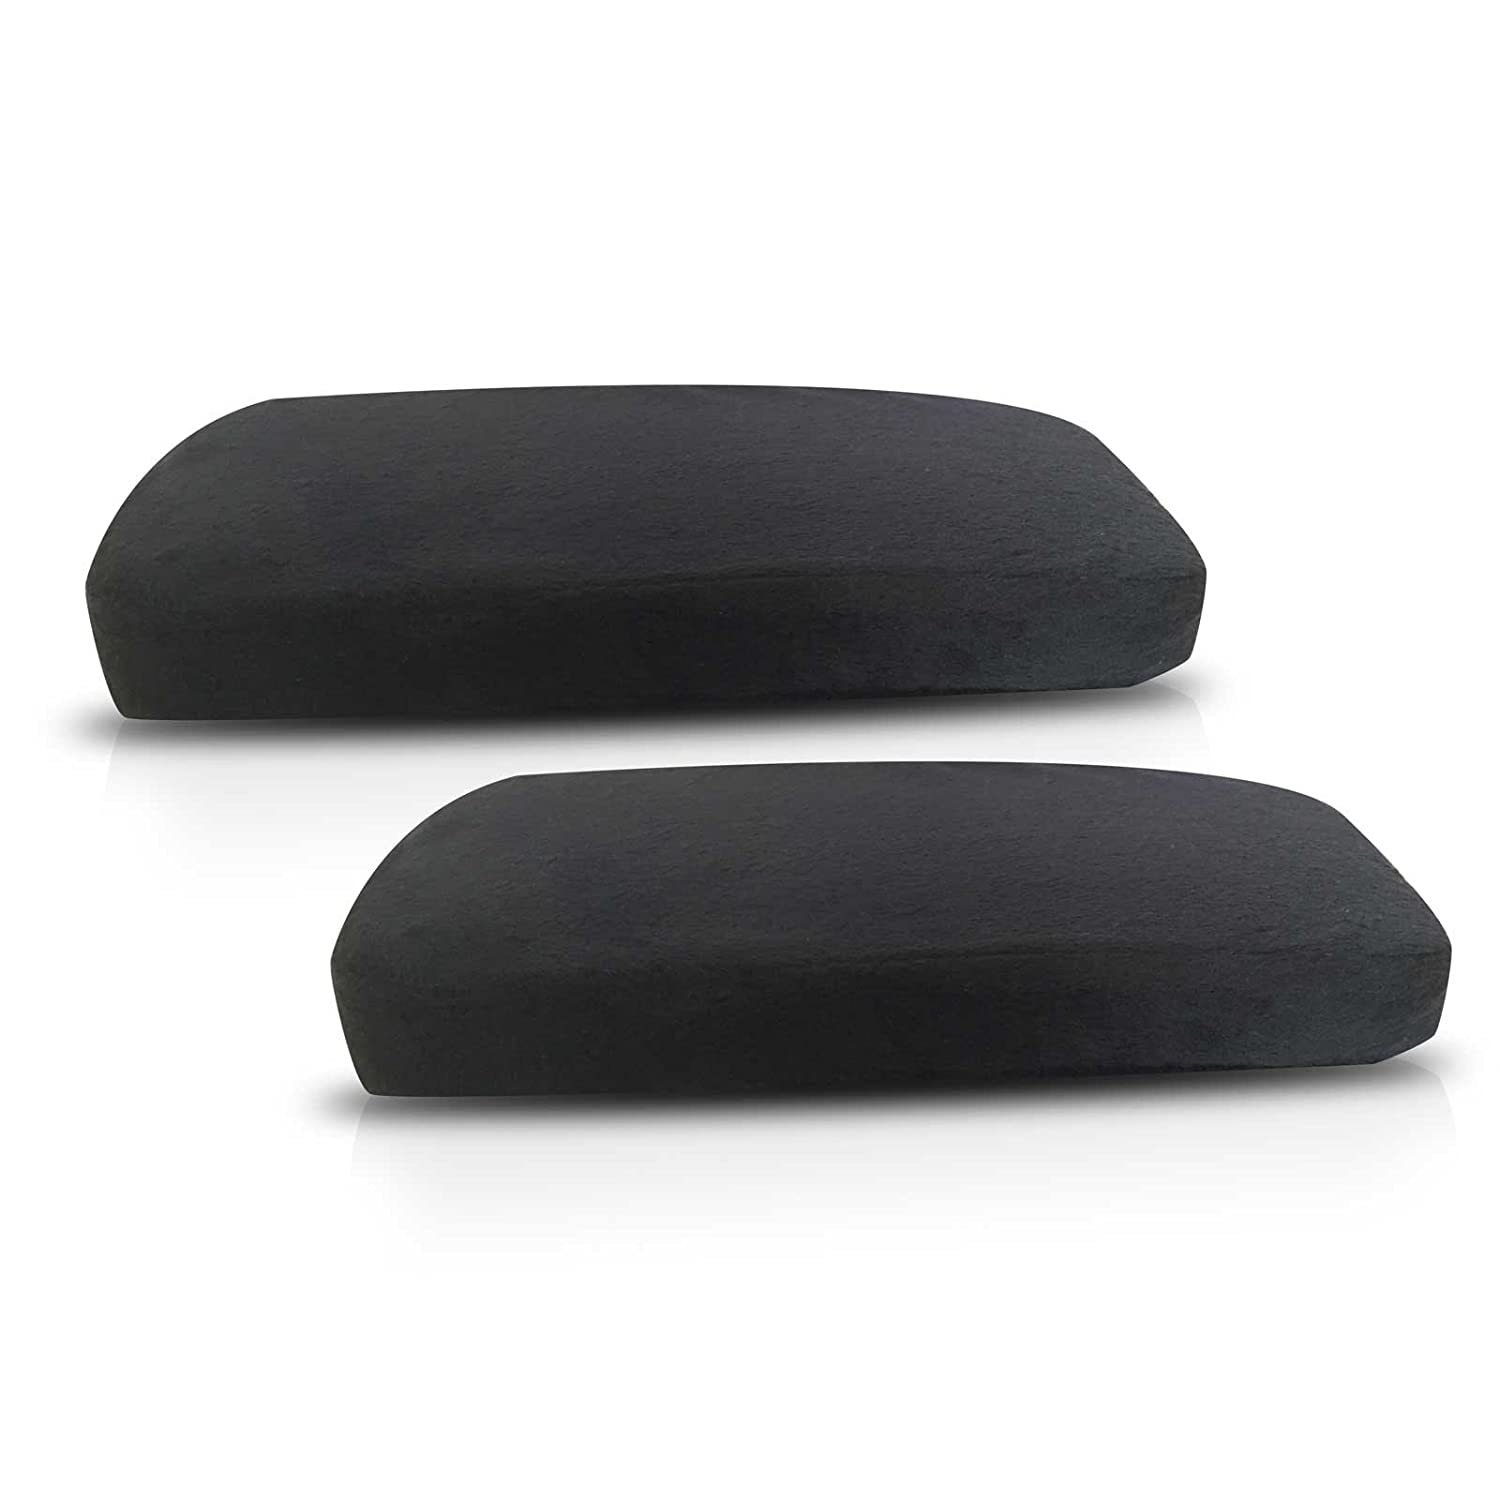 Amazon Memory Foam fice Chair Arm Rest Covers – Soft and